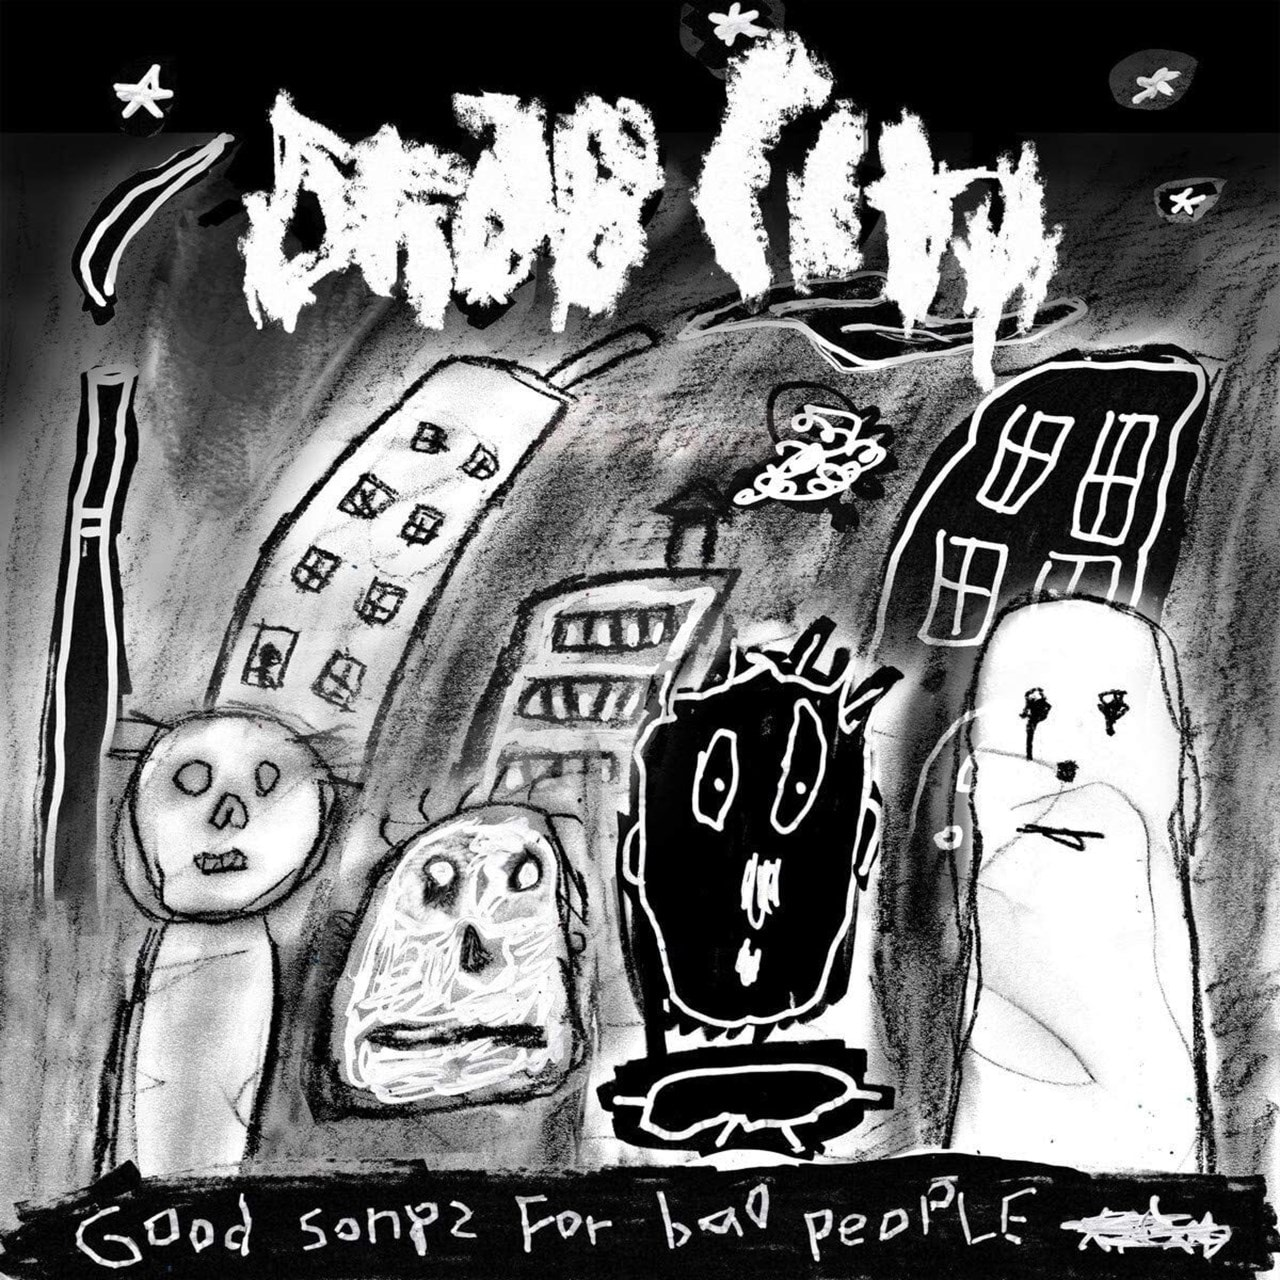 Good Songs for Bad People - 1